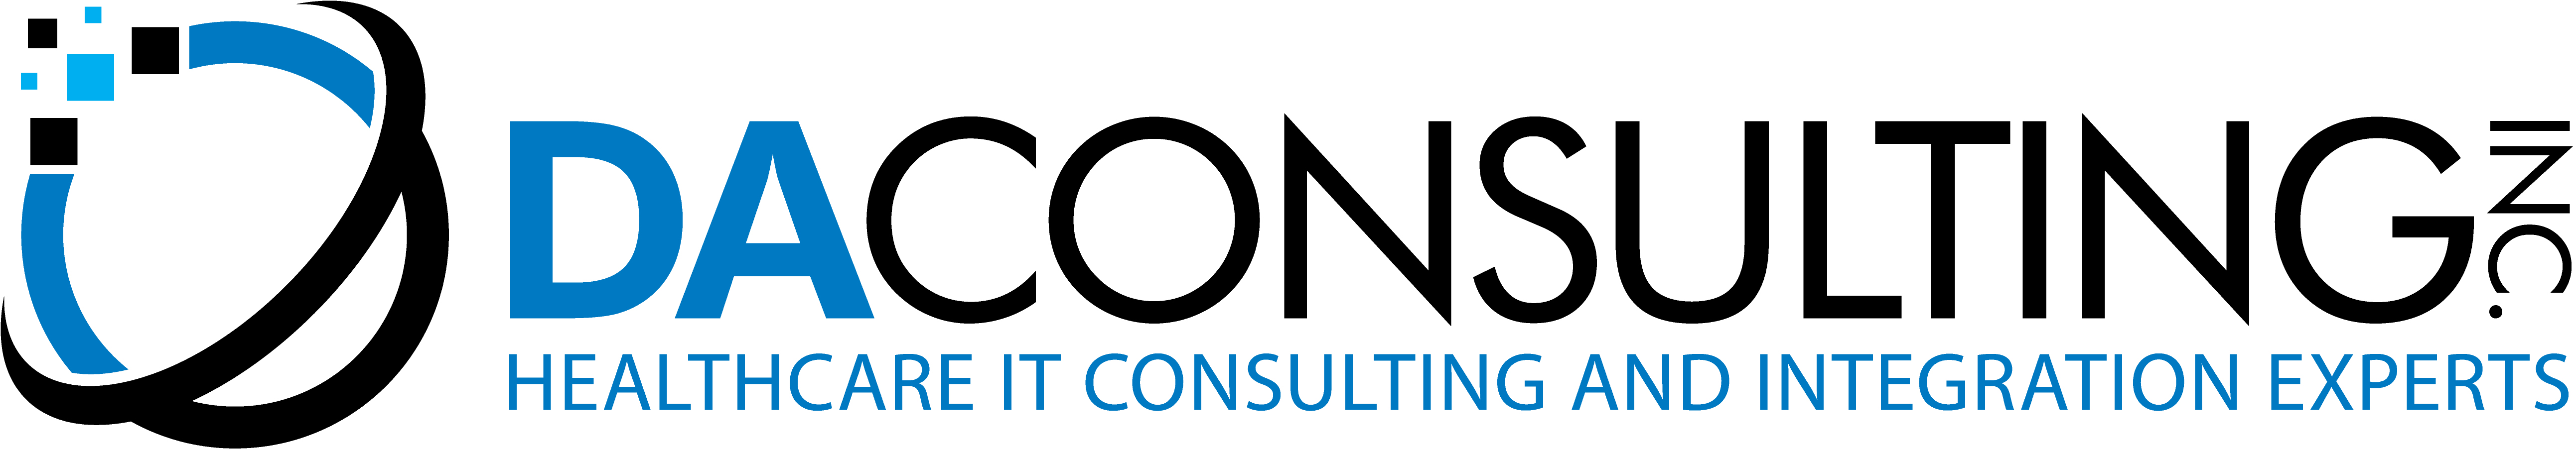 DACONSULTING, INC.